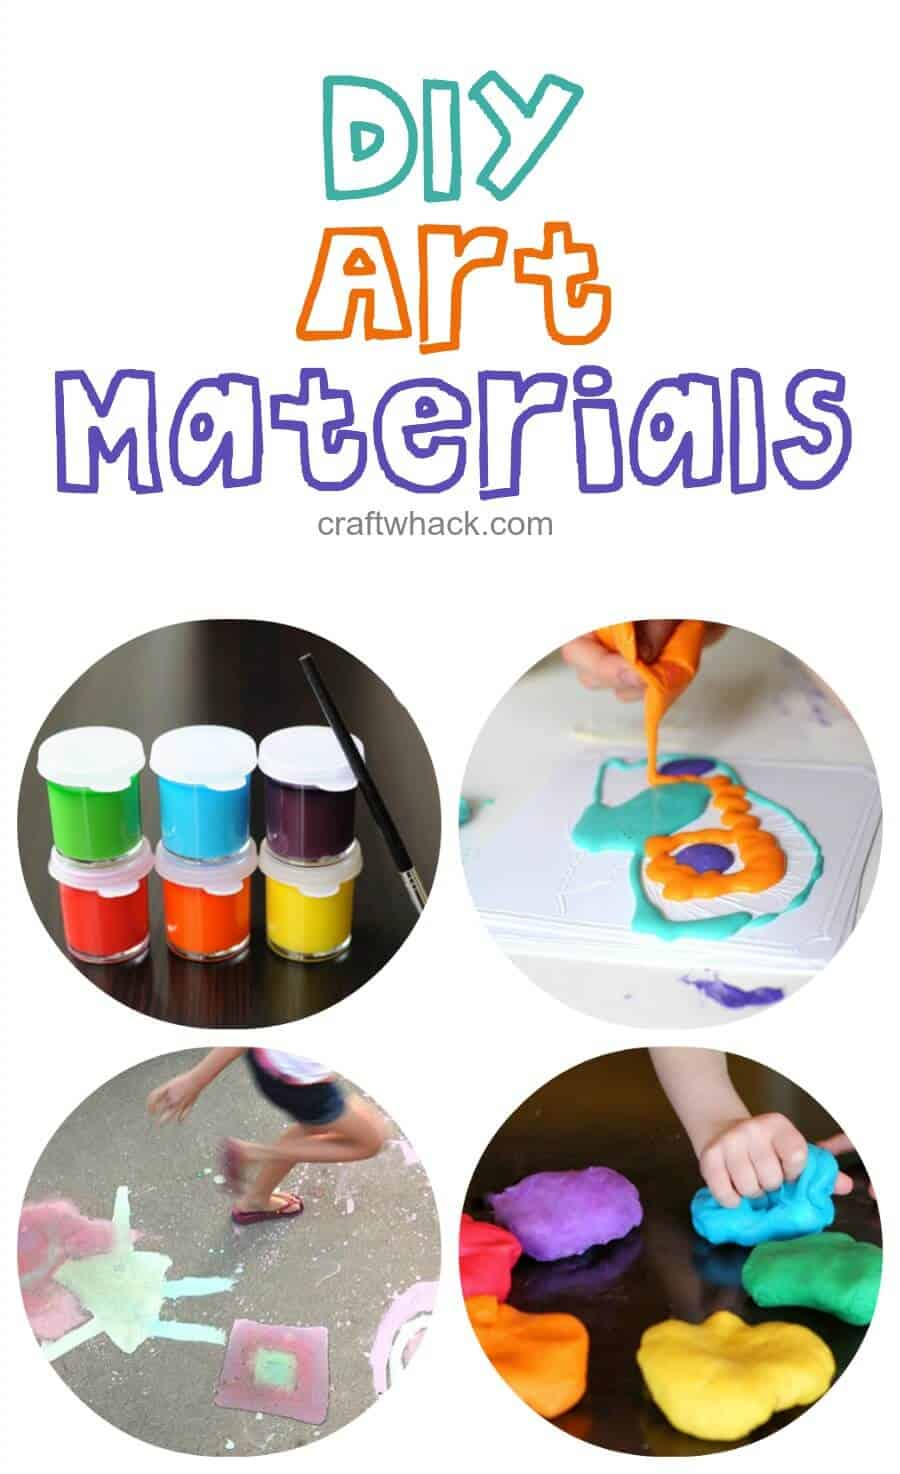 DIY art materials - ideas for making your own art supplies to double your creative endeavor!